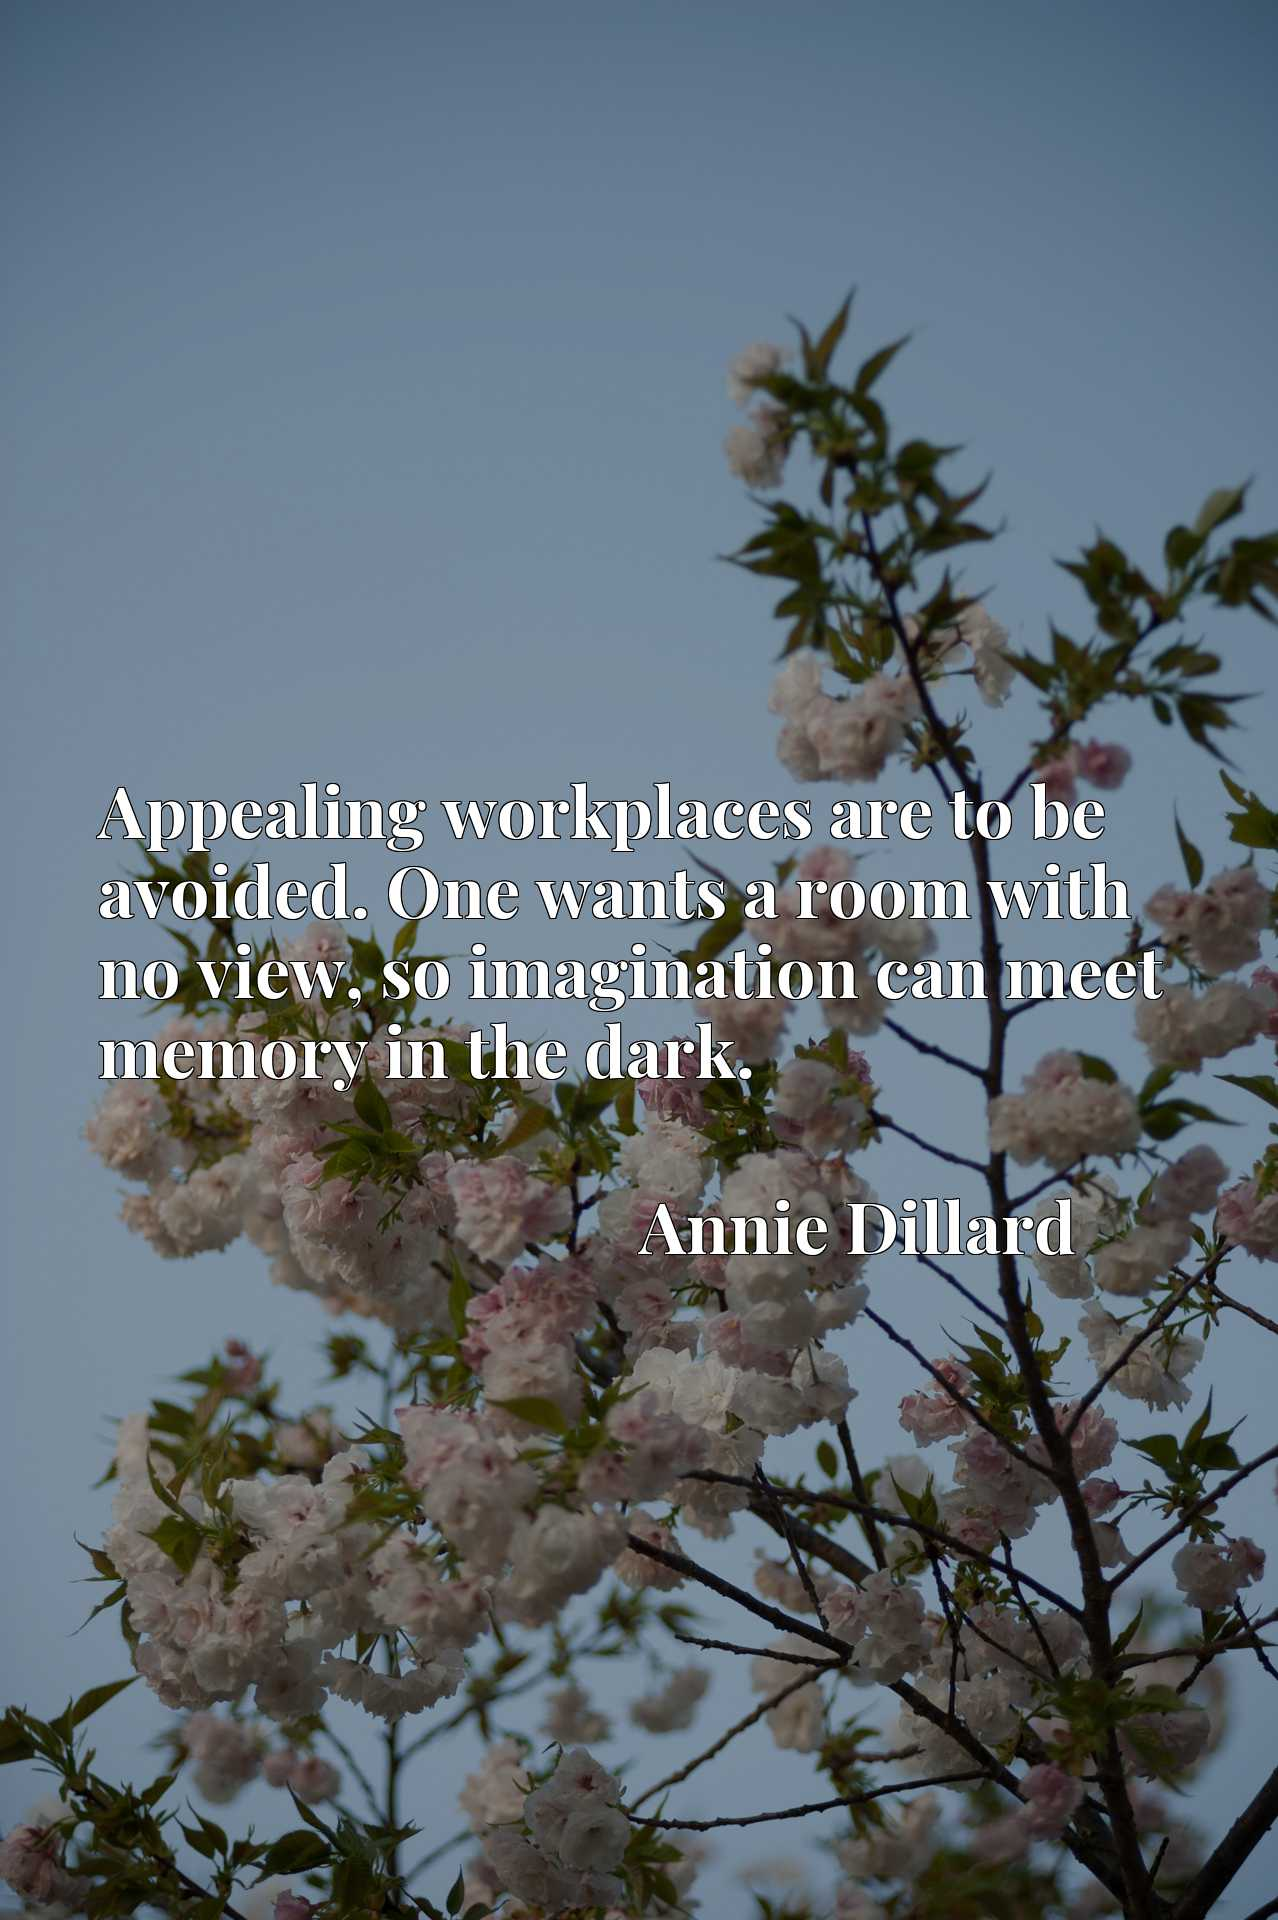 Quote Picture :Appealing workplaces are to be avoided. One wants a room with no view, so imagination can meet memory in the dark.